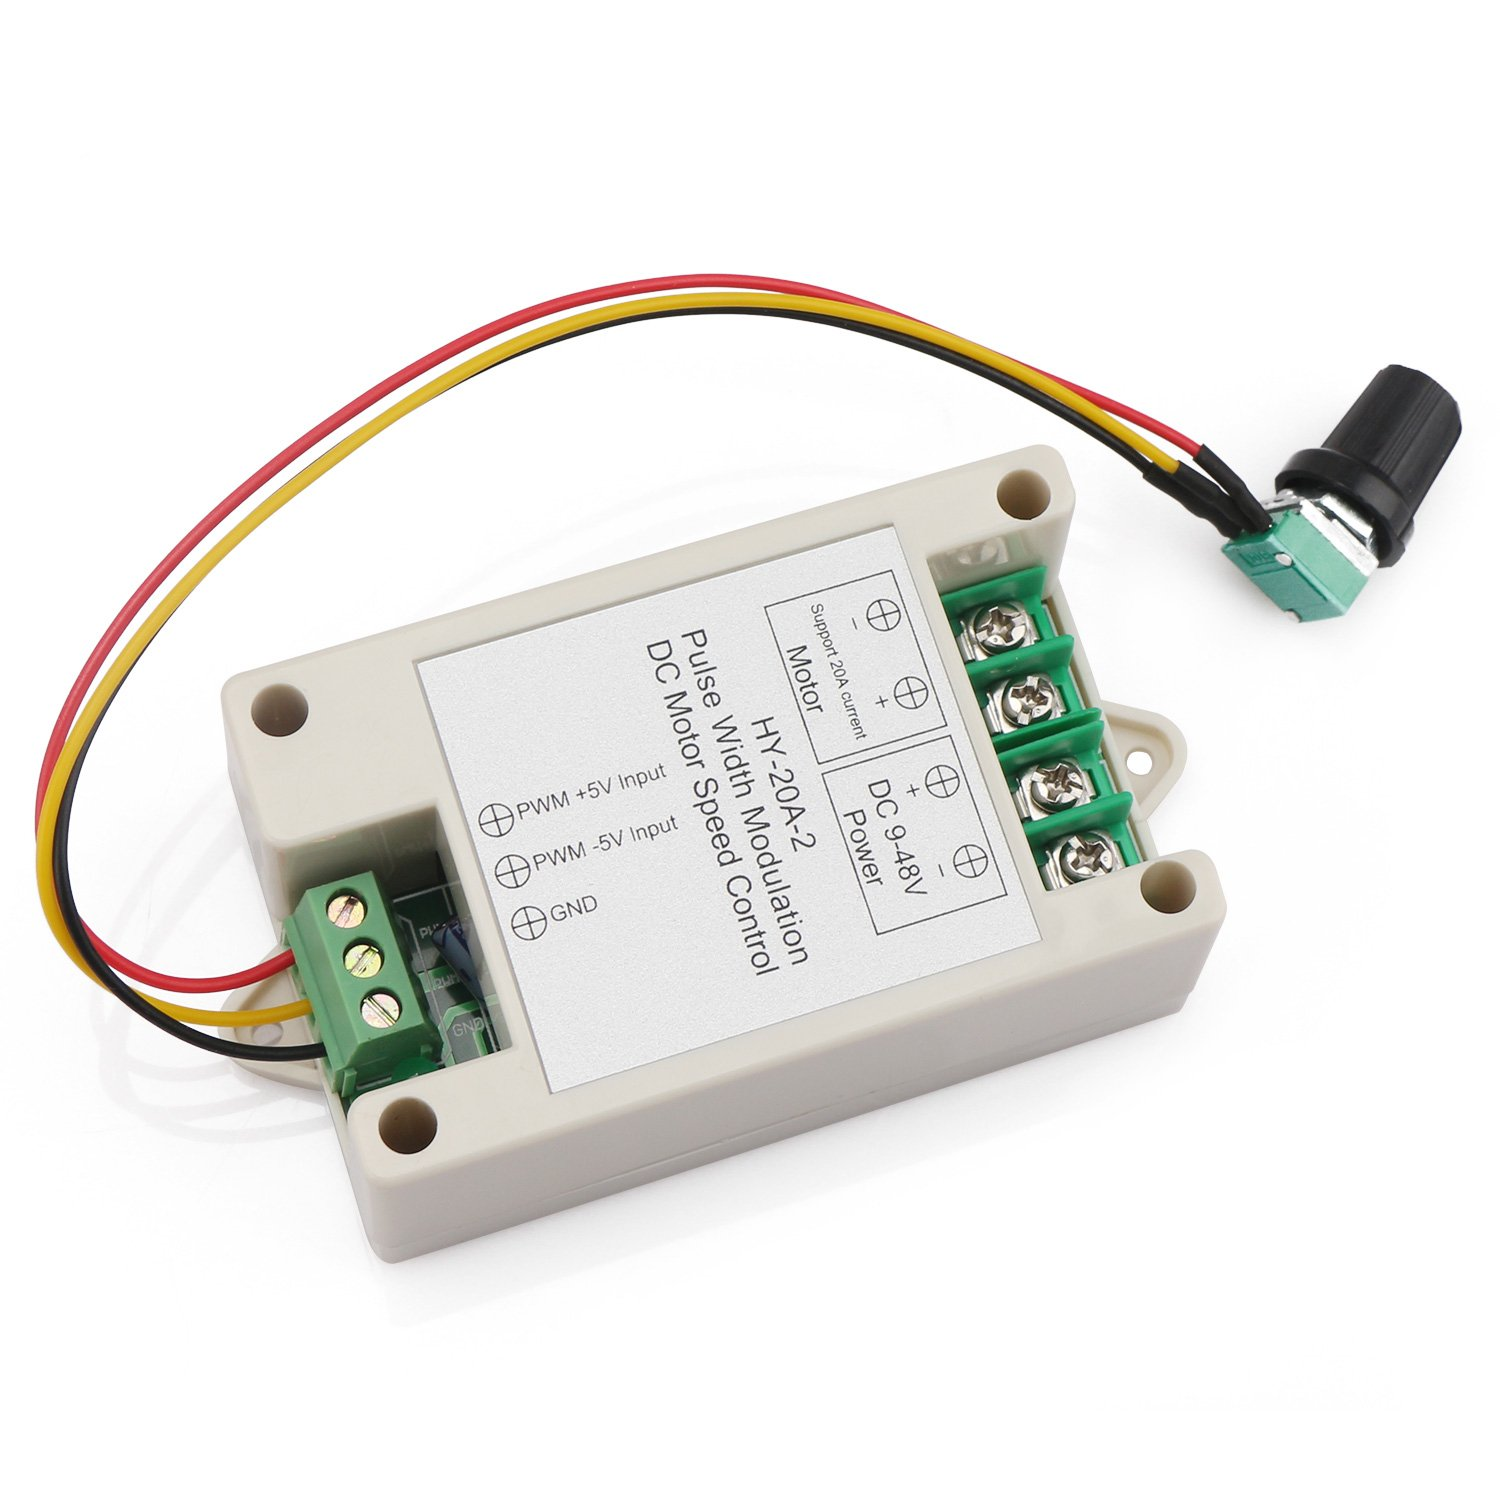 Drok Dc 9 48v 16khz Pwm Electric Motor Speed Controller Small 20a Wiring With Sensitive Knob Support 0 5v Frequency Converter Input Control